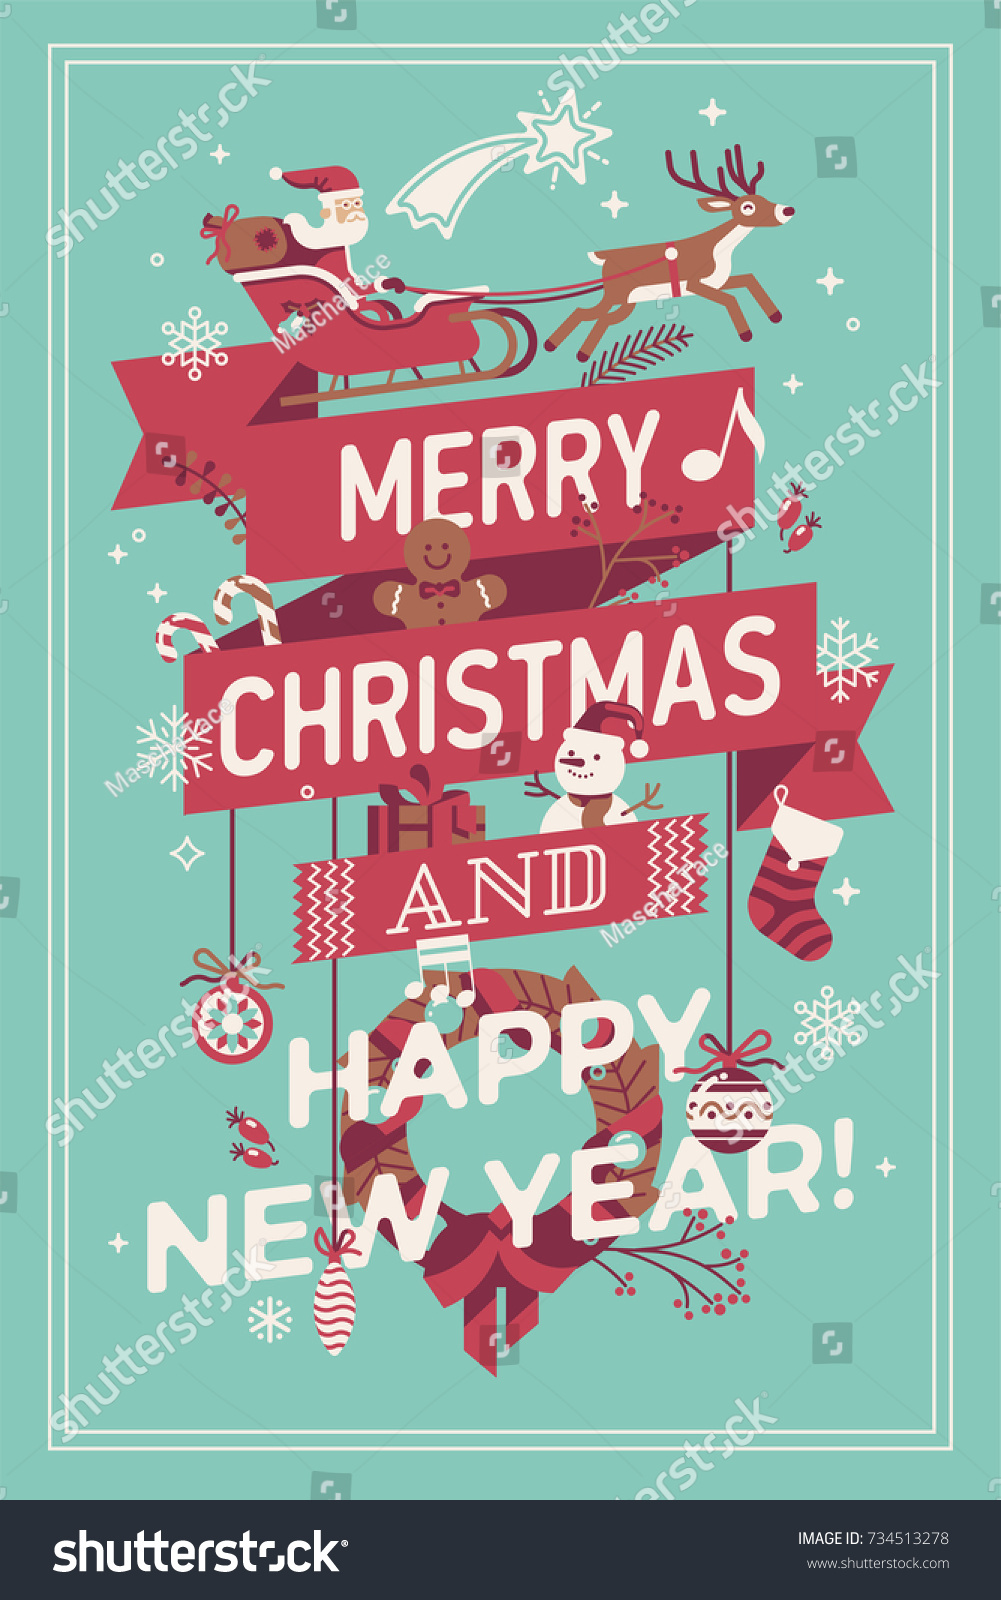 merry christmas and happy new year vector poster banner or greeting card template ideal